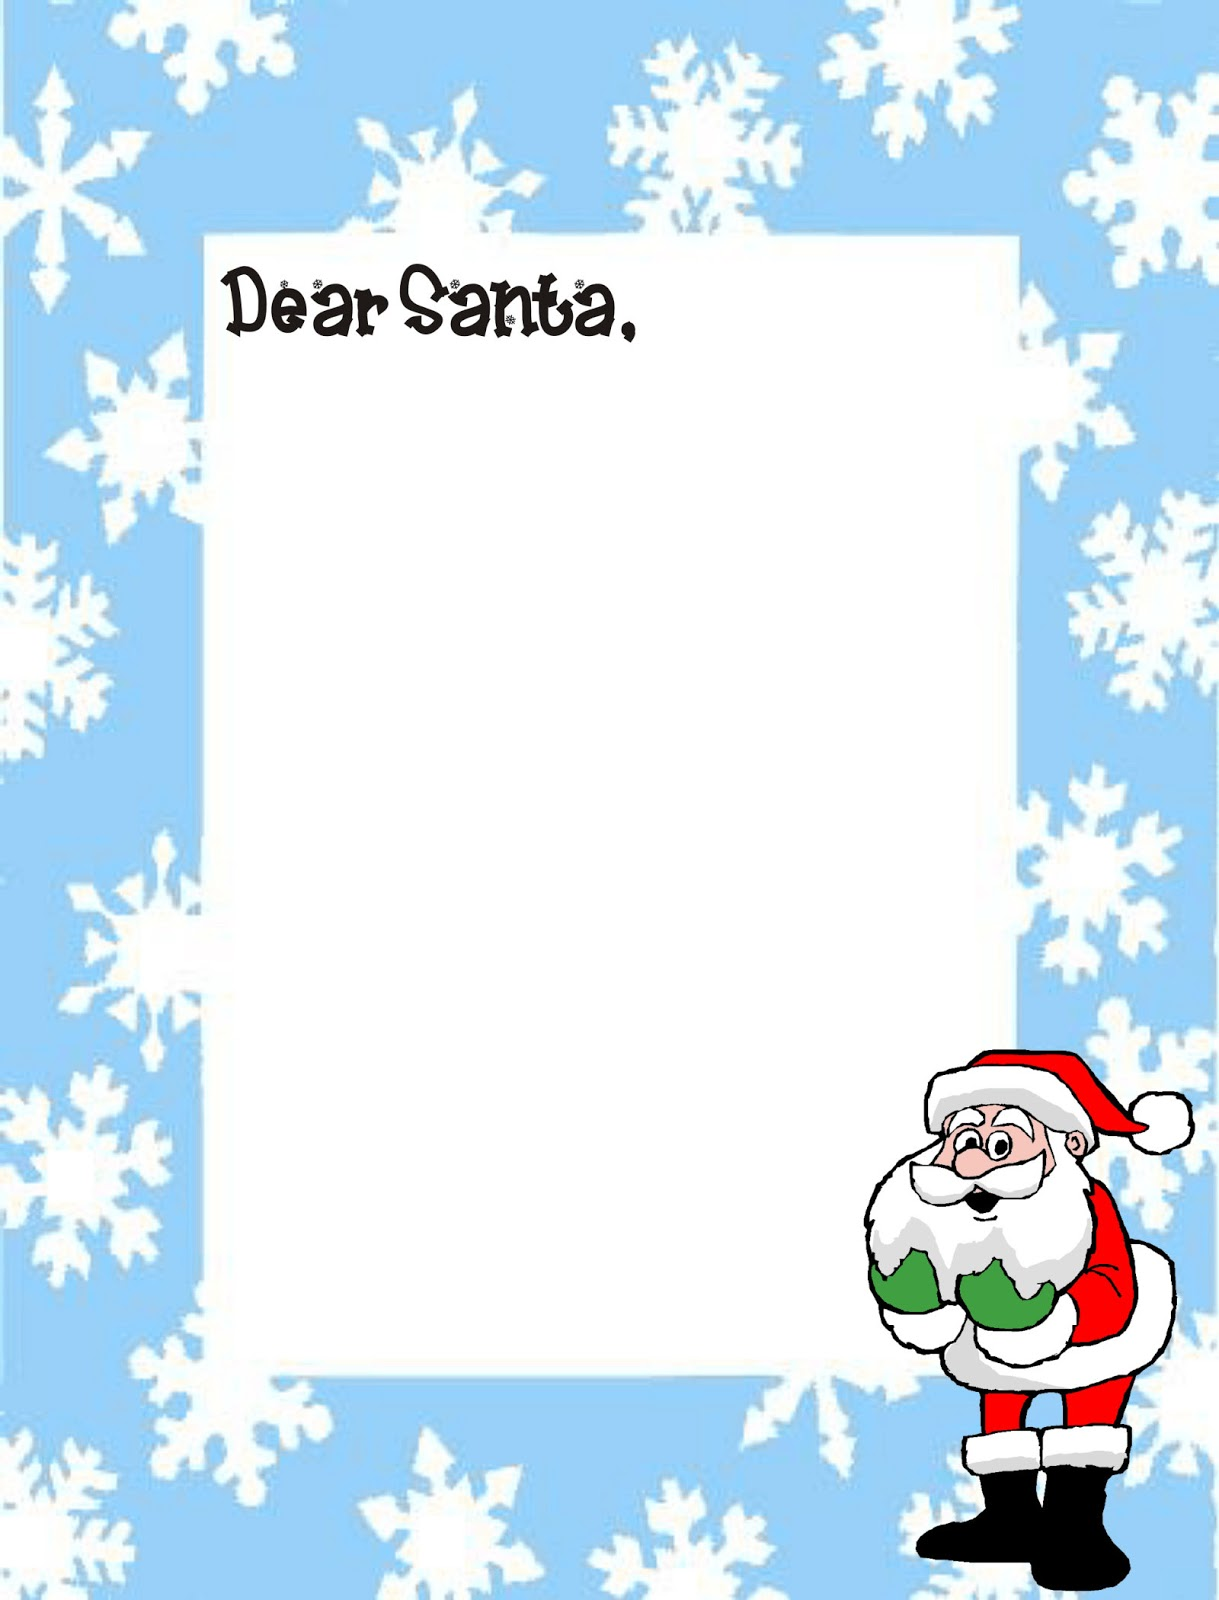 search results for santa letter background calendar 2015 santa letter religious for printable search results 126